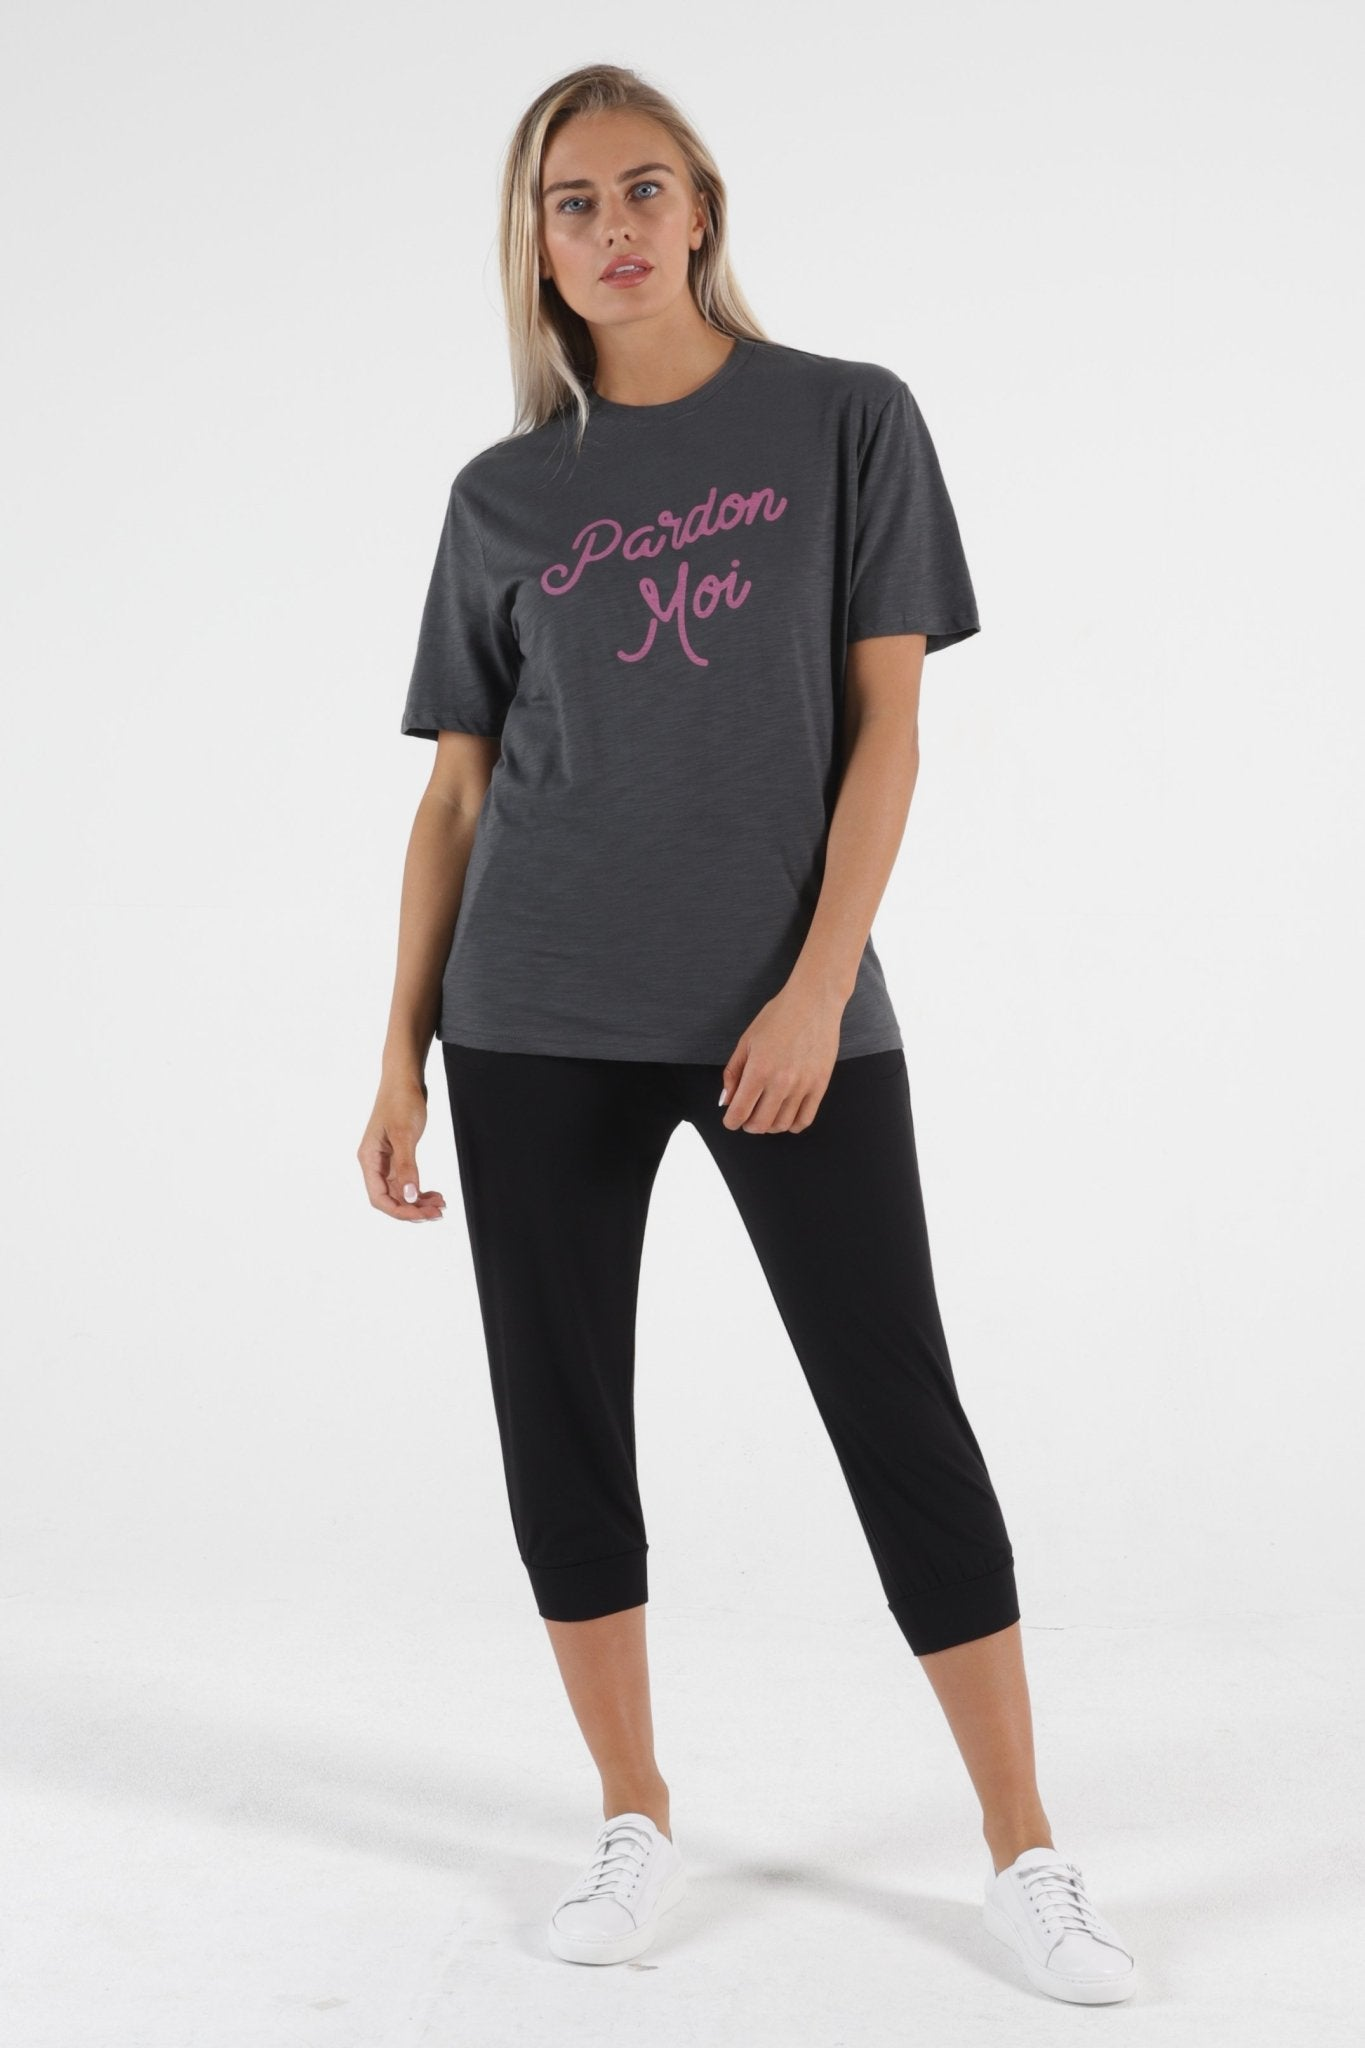 Betty Basics Ariana Tee in Indi Grey - Pardon Moi - Hey Sara